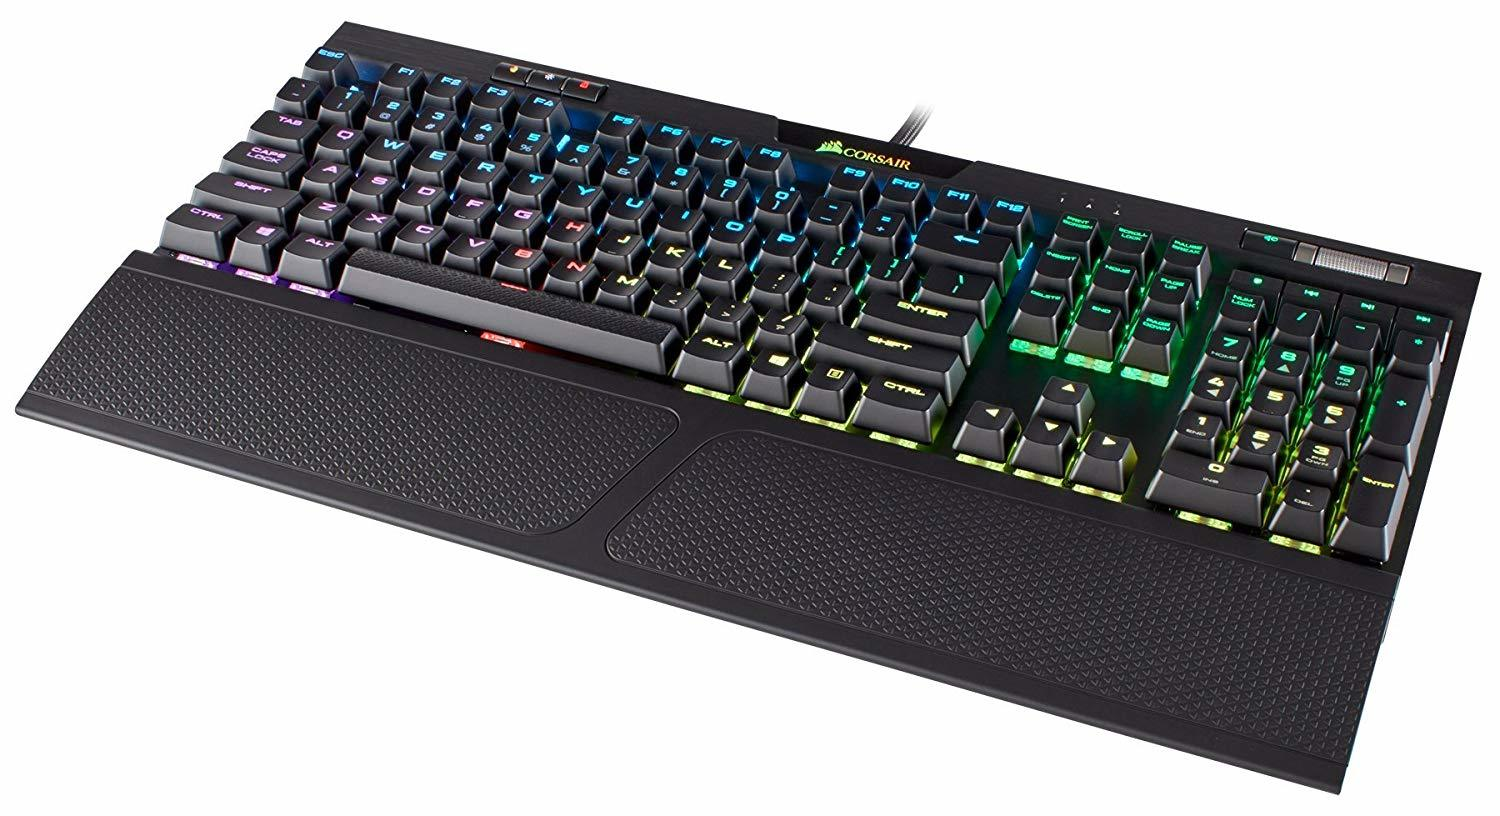 Corsair K70 RGB MK.2 Mechanical Gaming Keyboard (Cherry MX Silent) - PC Games